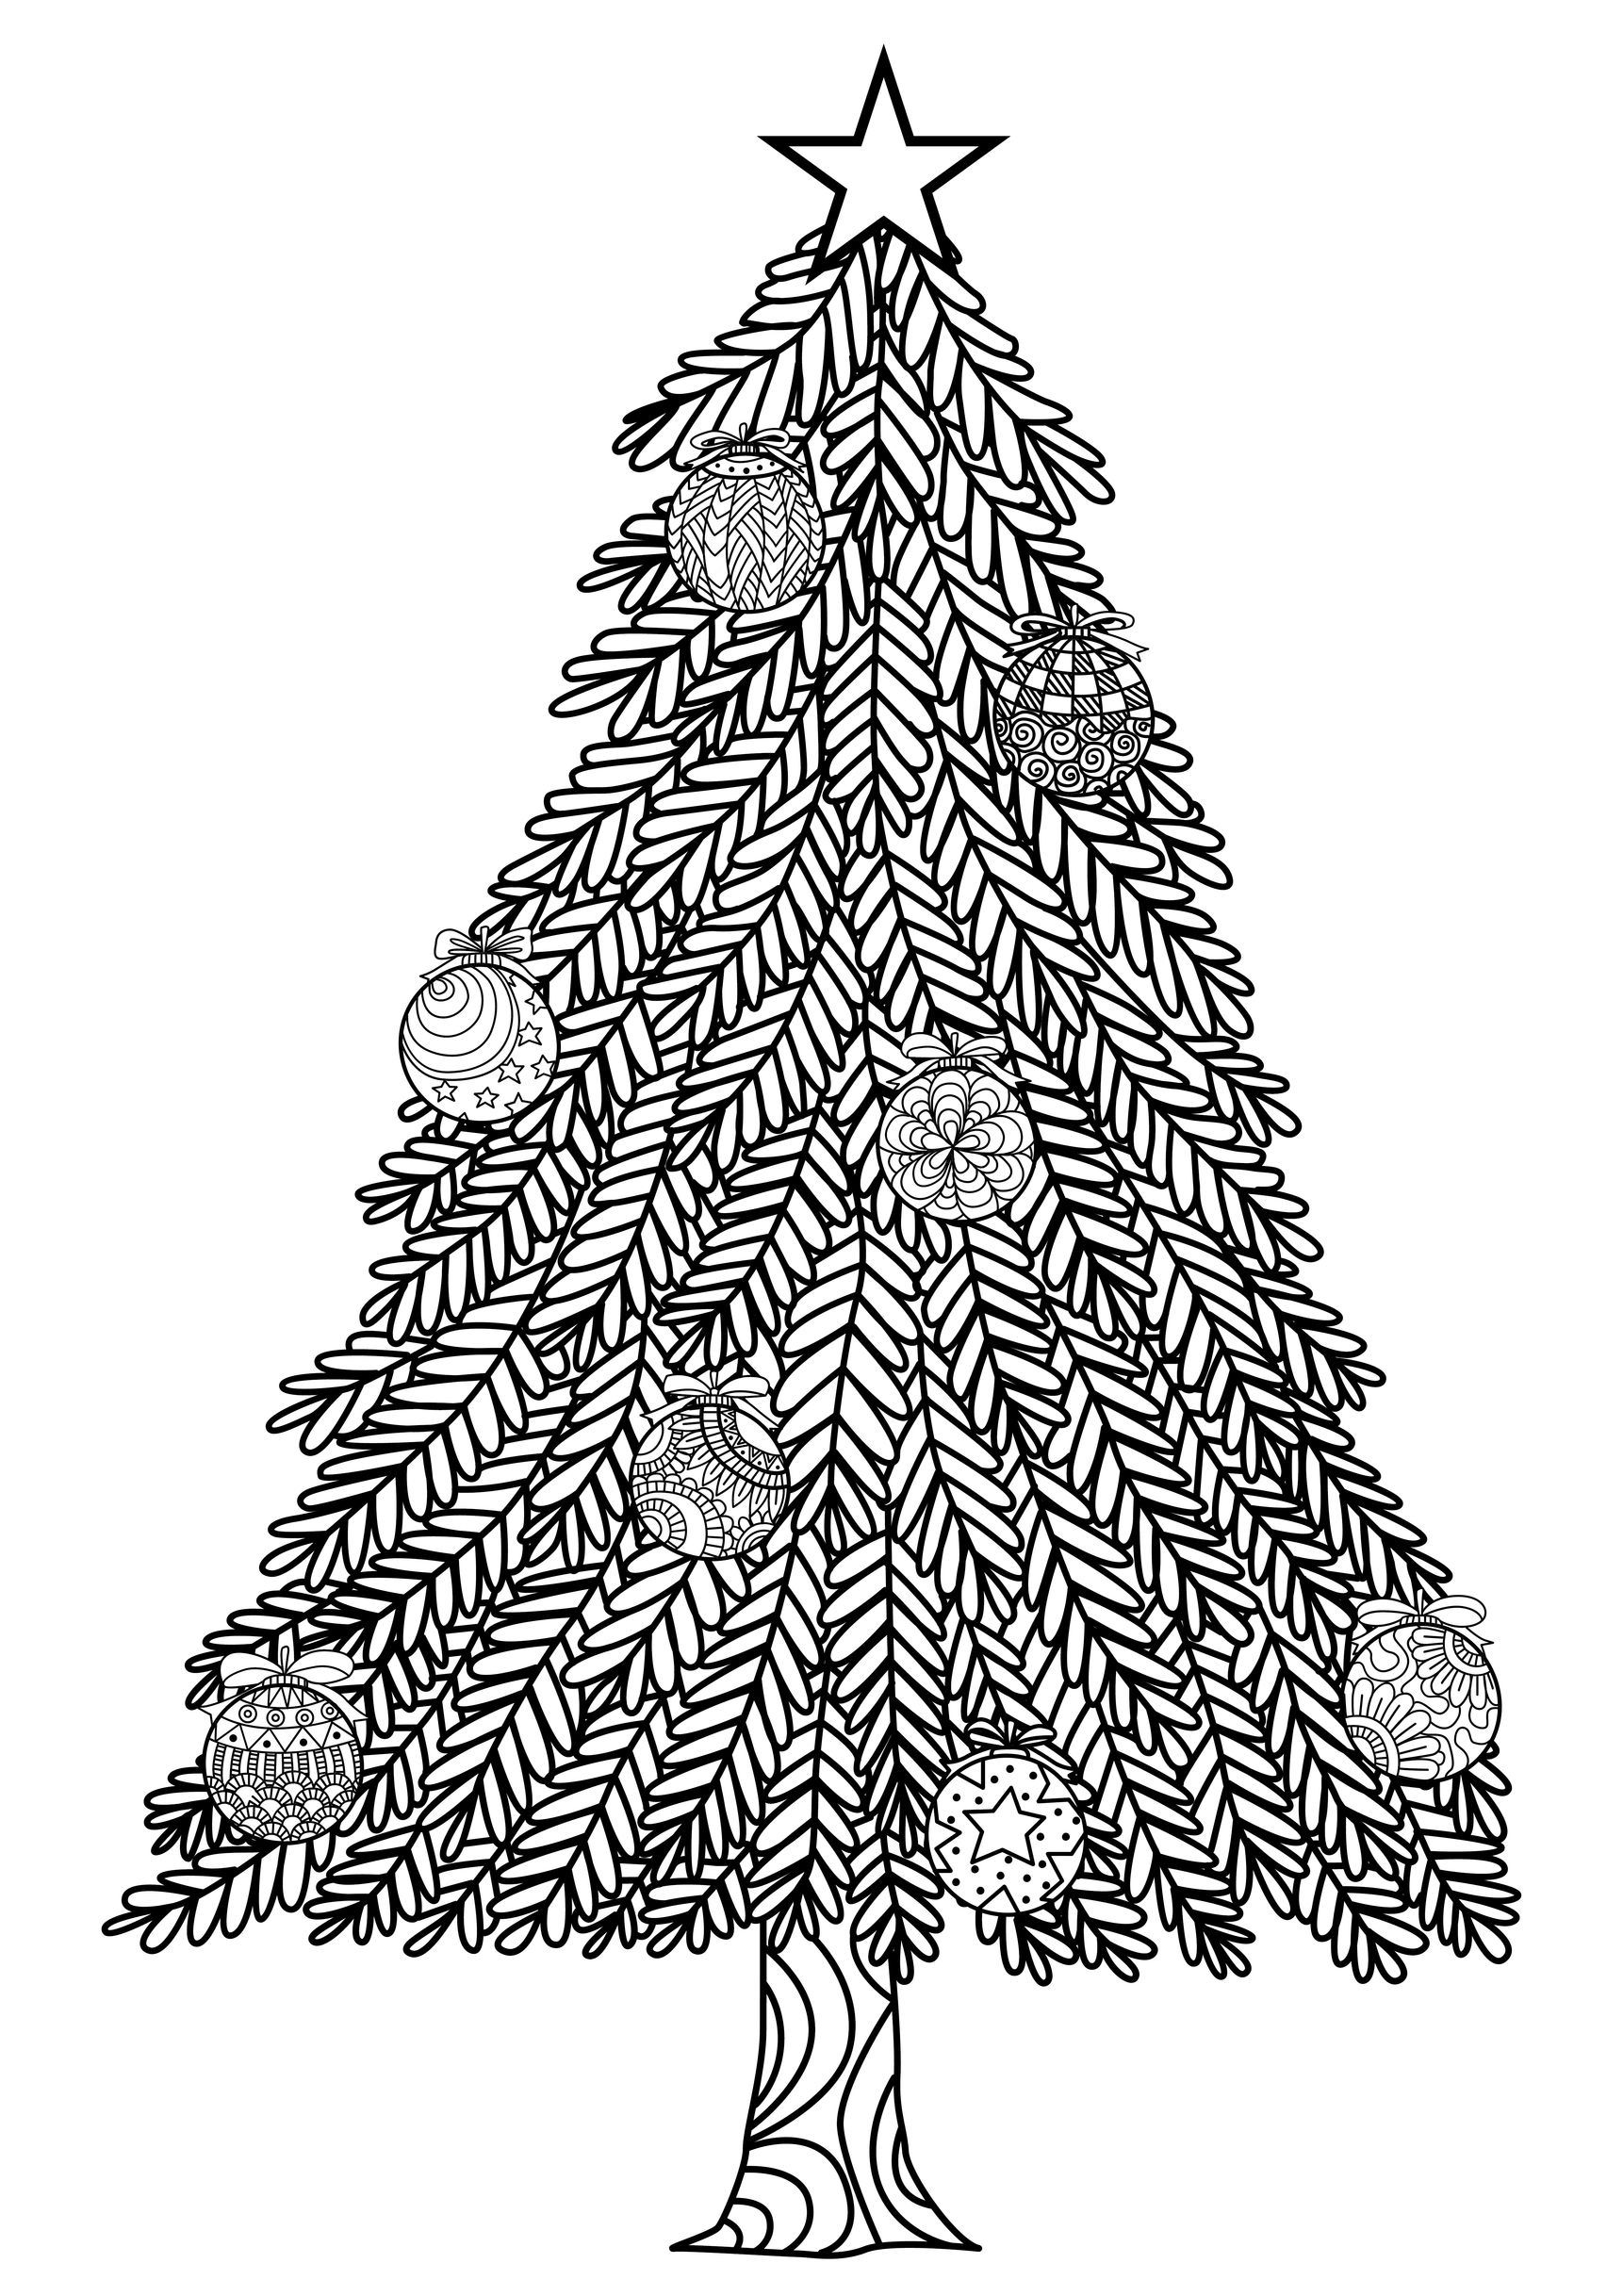 Christmas Leaf Coloring Pages With Tree For Adults Free Books